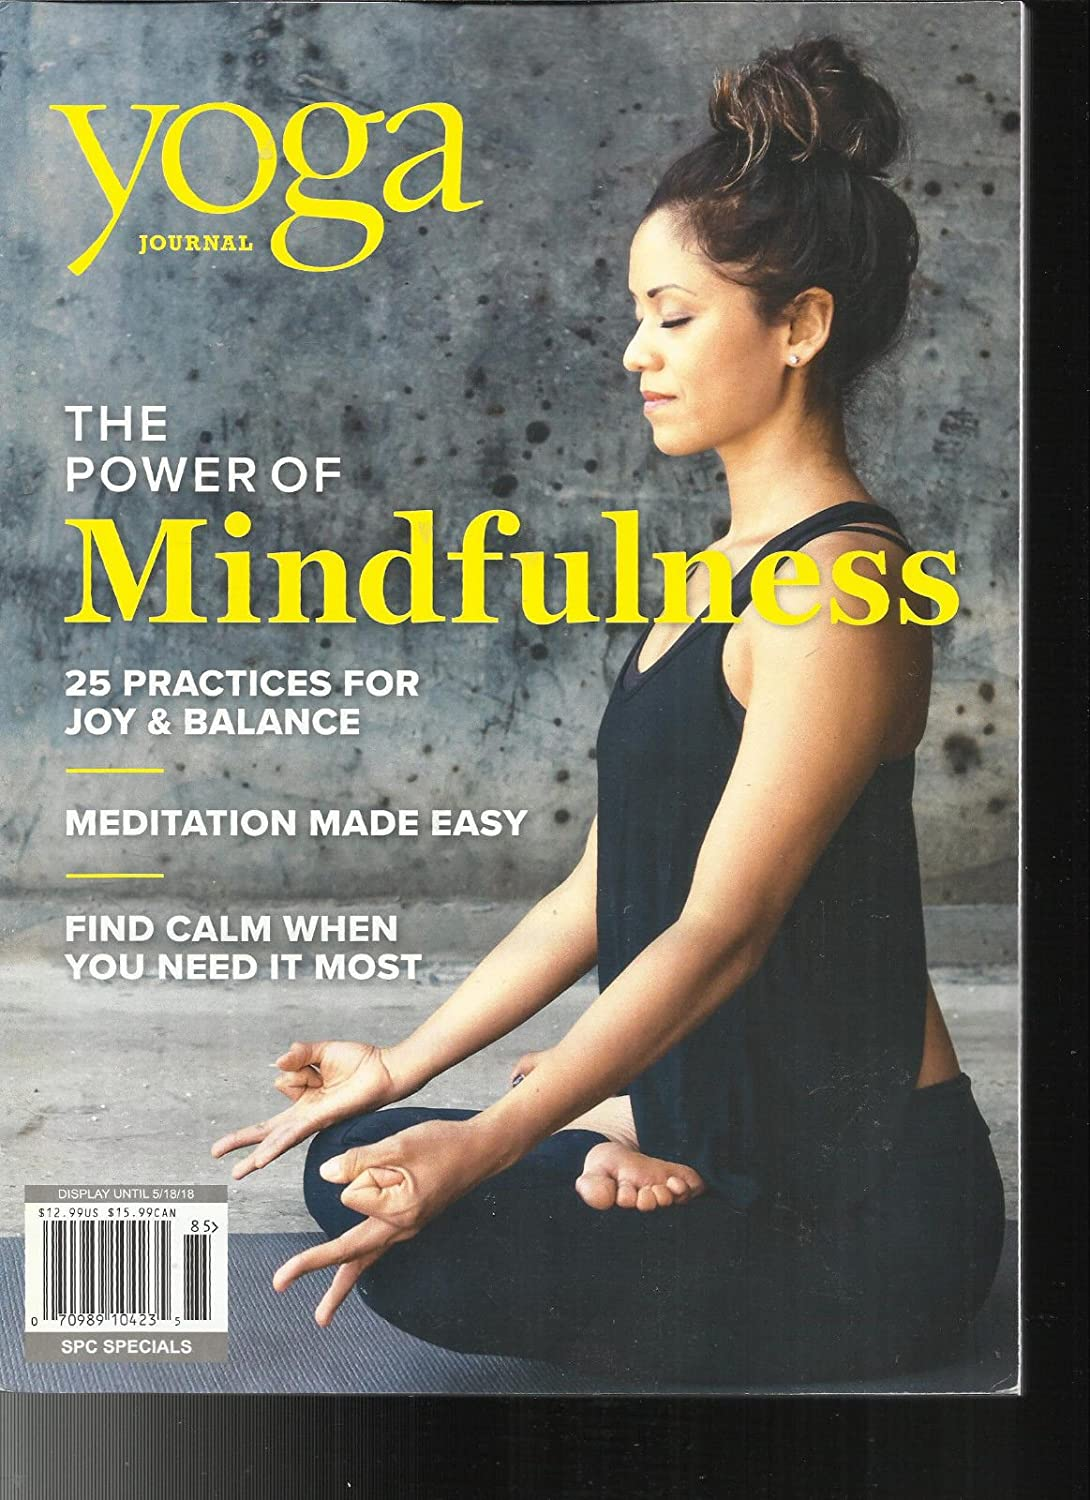 YOGA JOURNAL MAGAZINE, THE POWER OF MINDFULNESS SPECIAL ISSUE, 2018 s3457